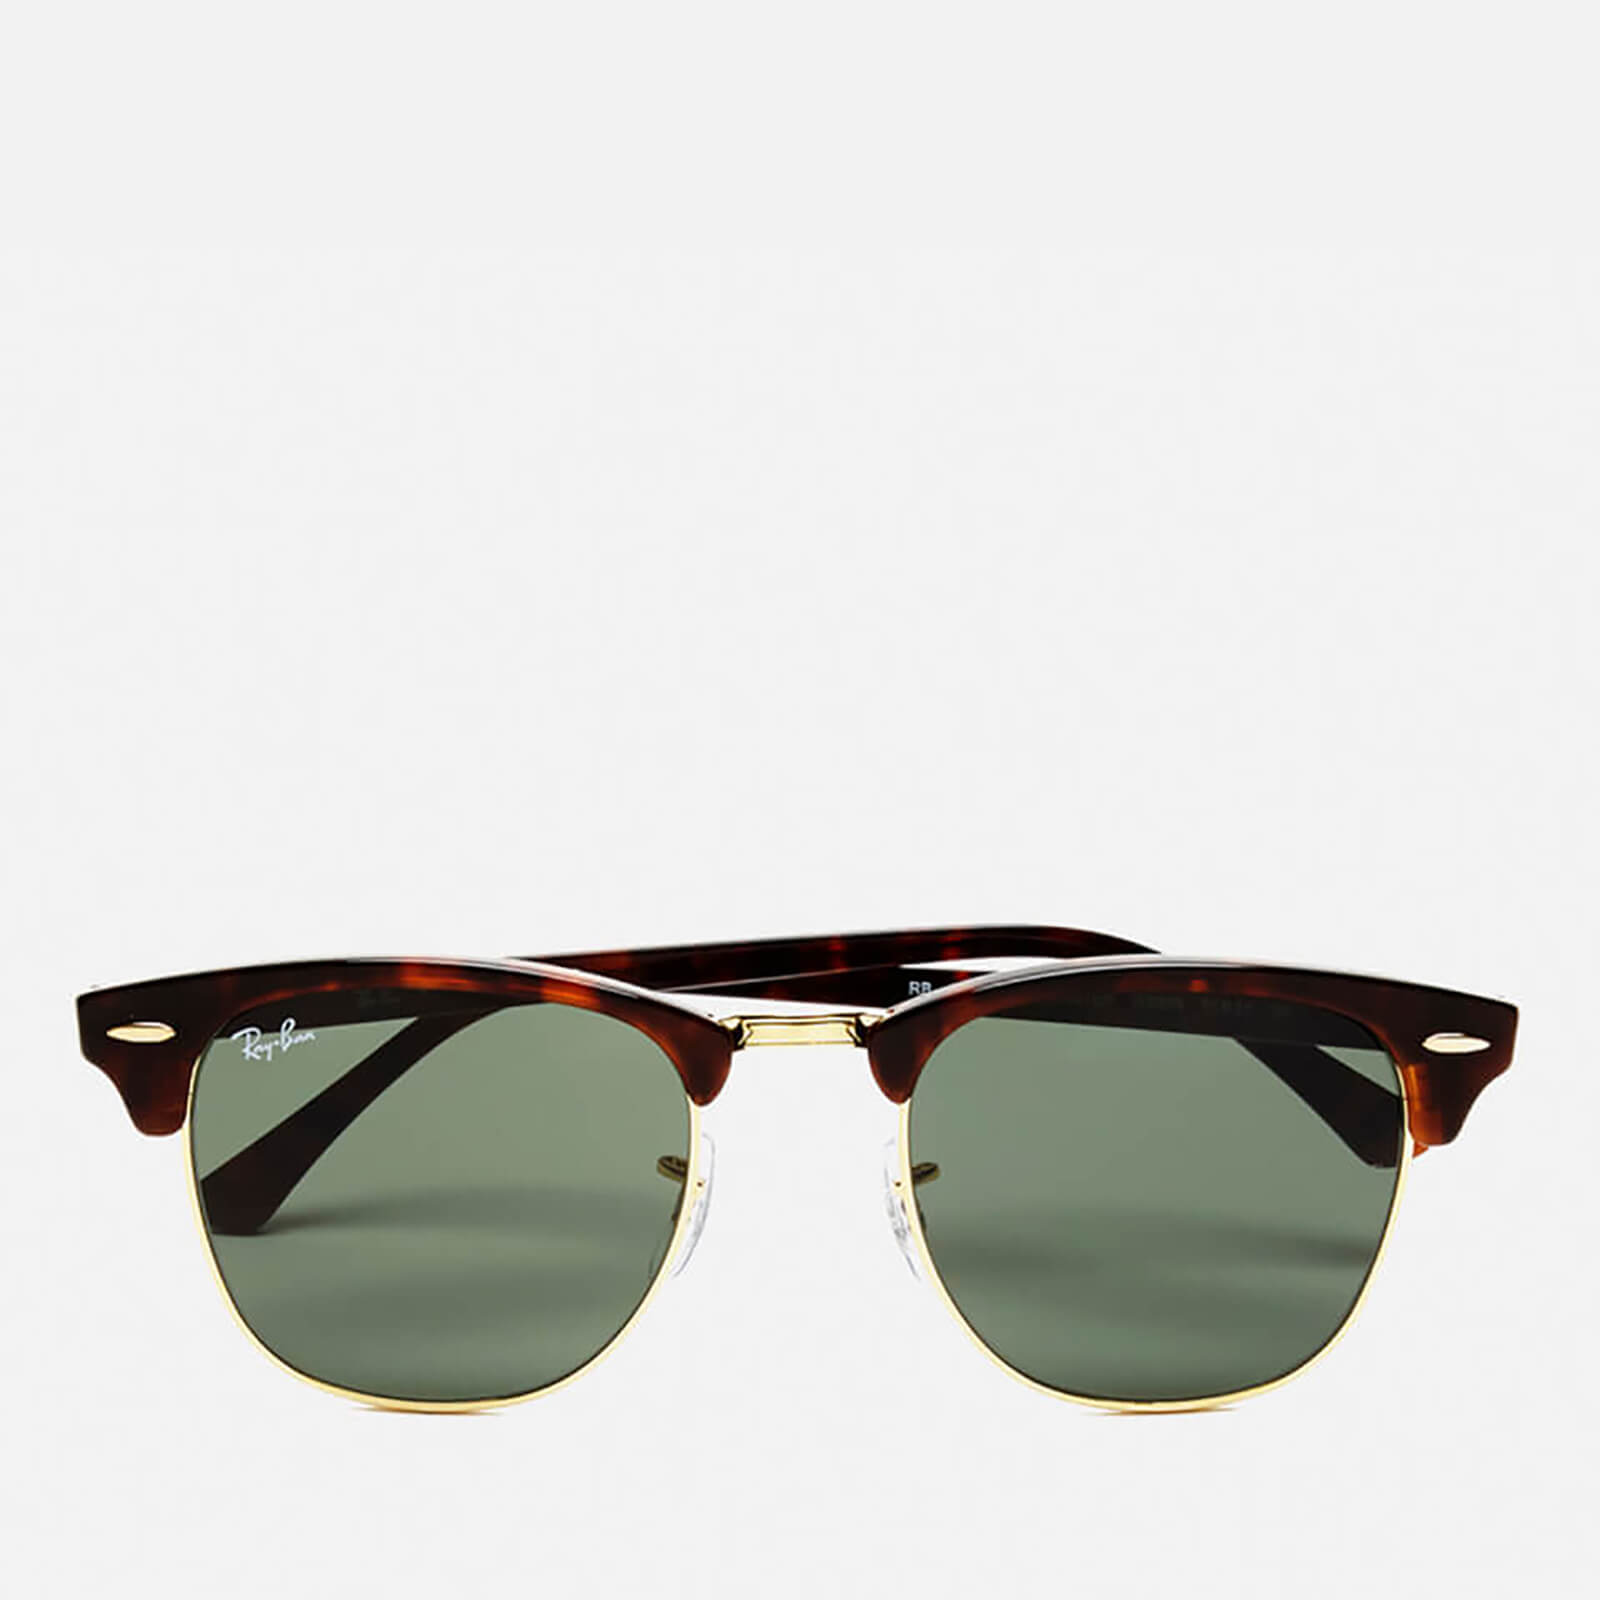 8eb4ff69b48 Ray-Ban Clubmaster Sunglasses 49mm - Mock Tortoise Arista - Free UK  Delivery over £50